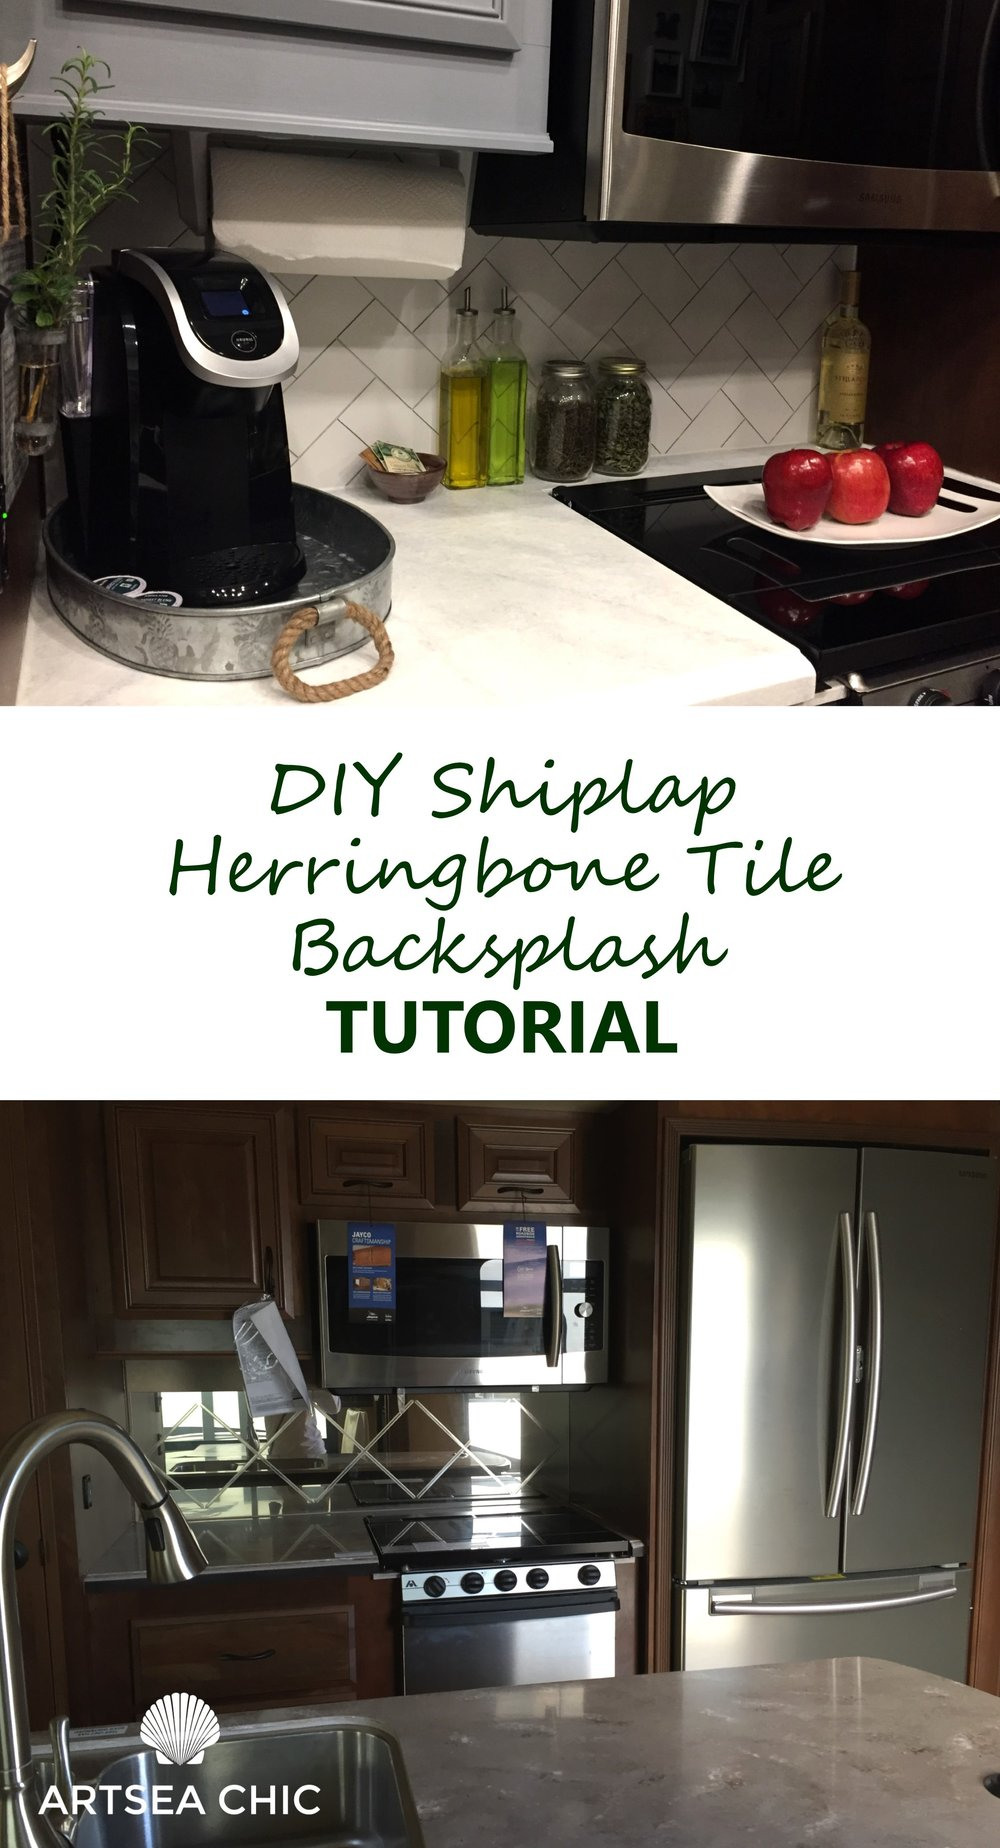 DIY Shiplap Herringbone Tile Backsplash Tutorial